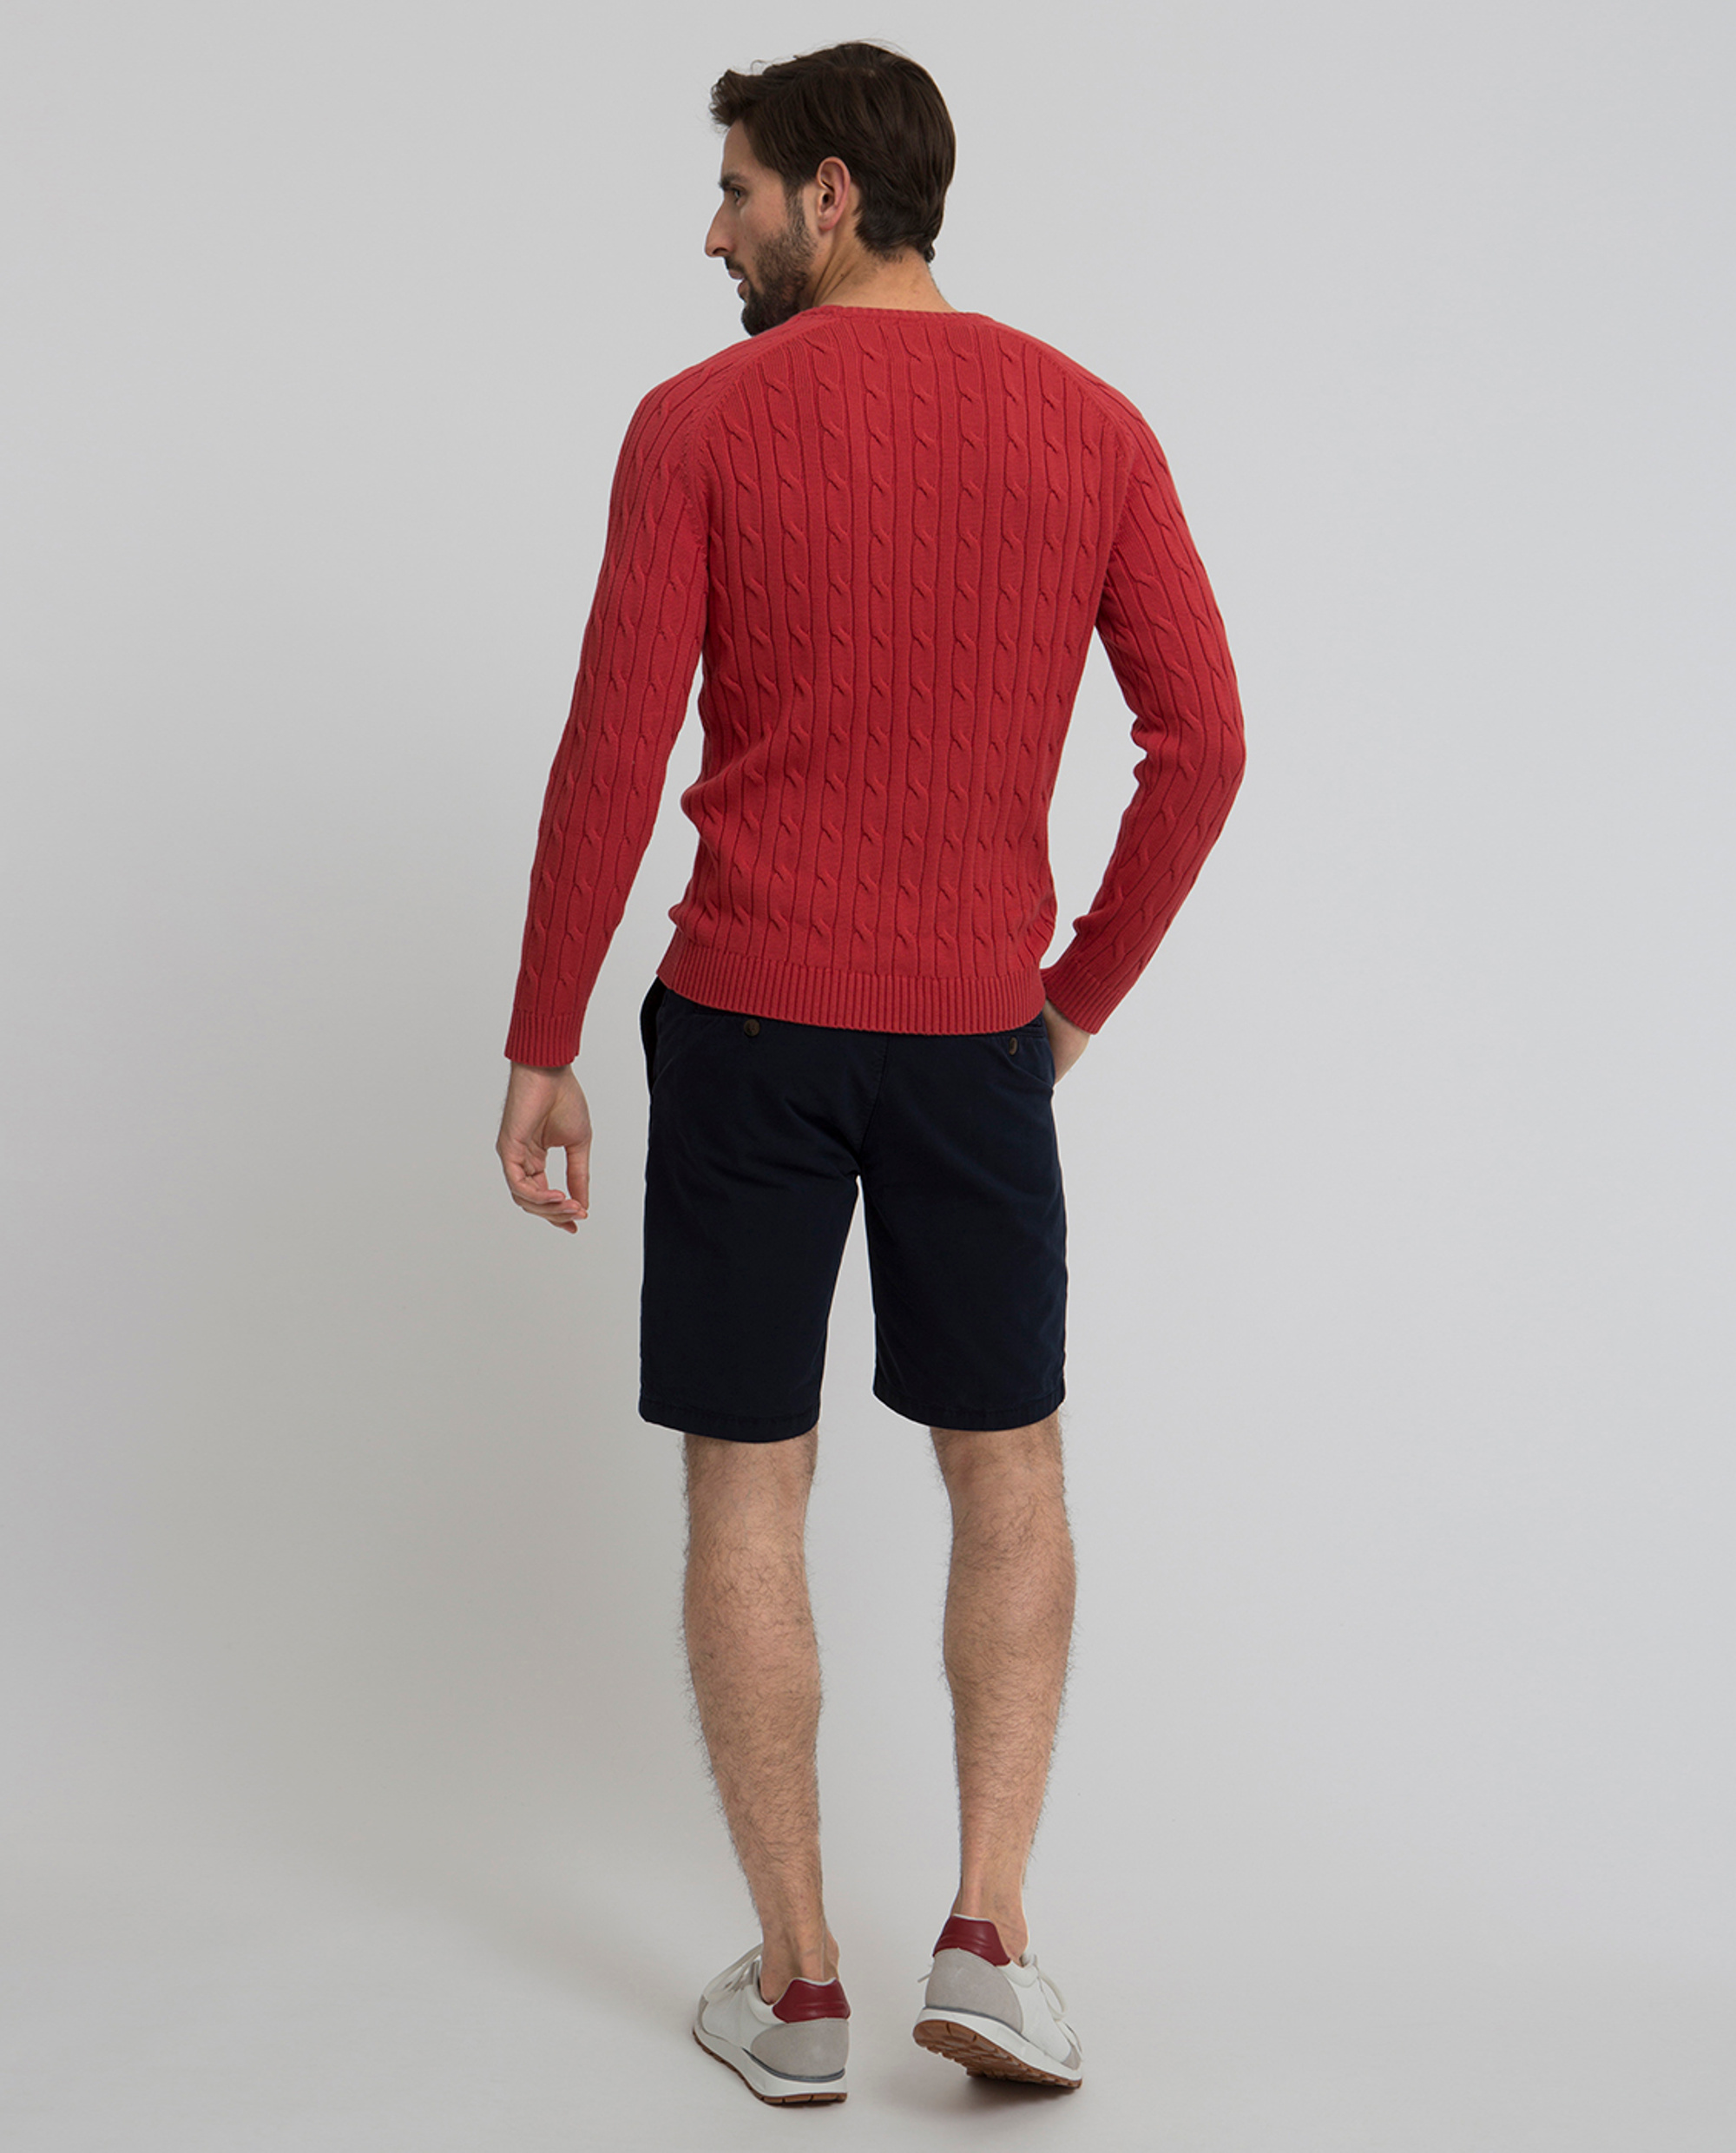 Andrew Cotton Cable Sweater, Vintage Red